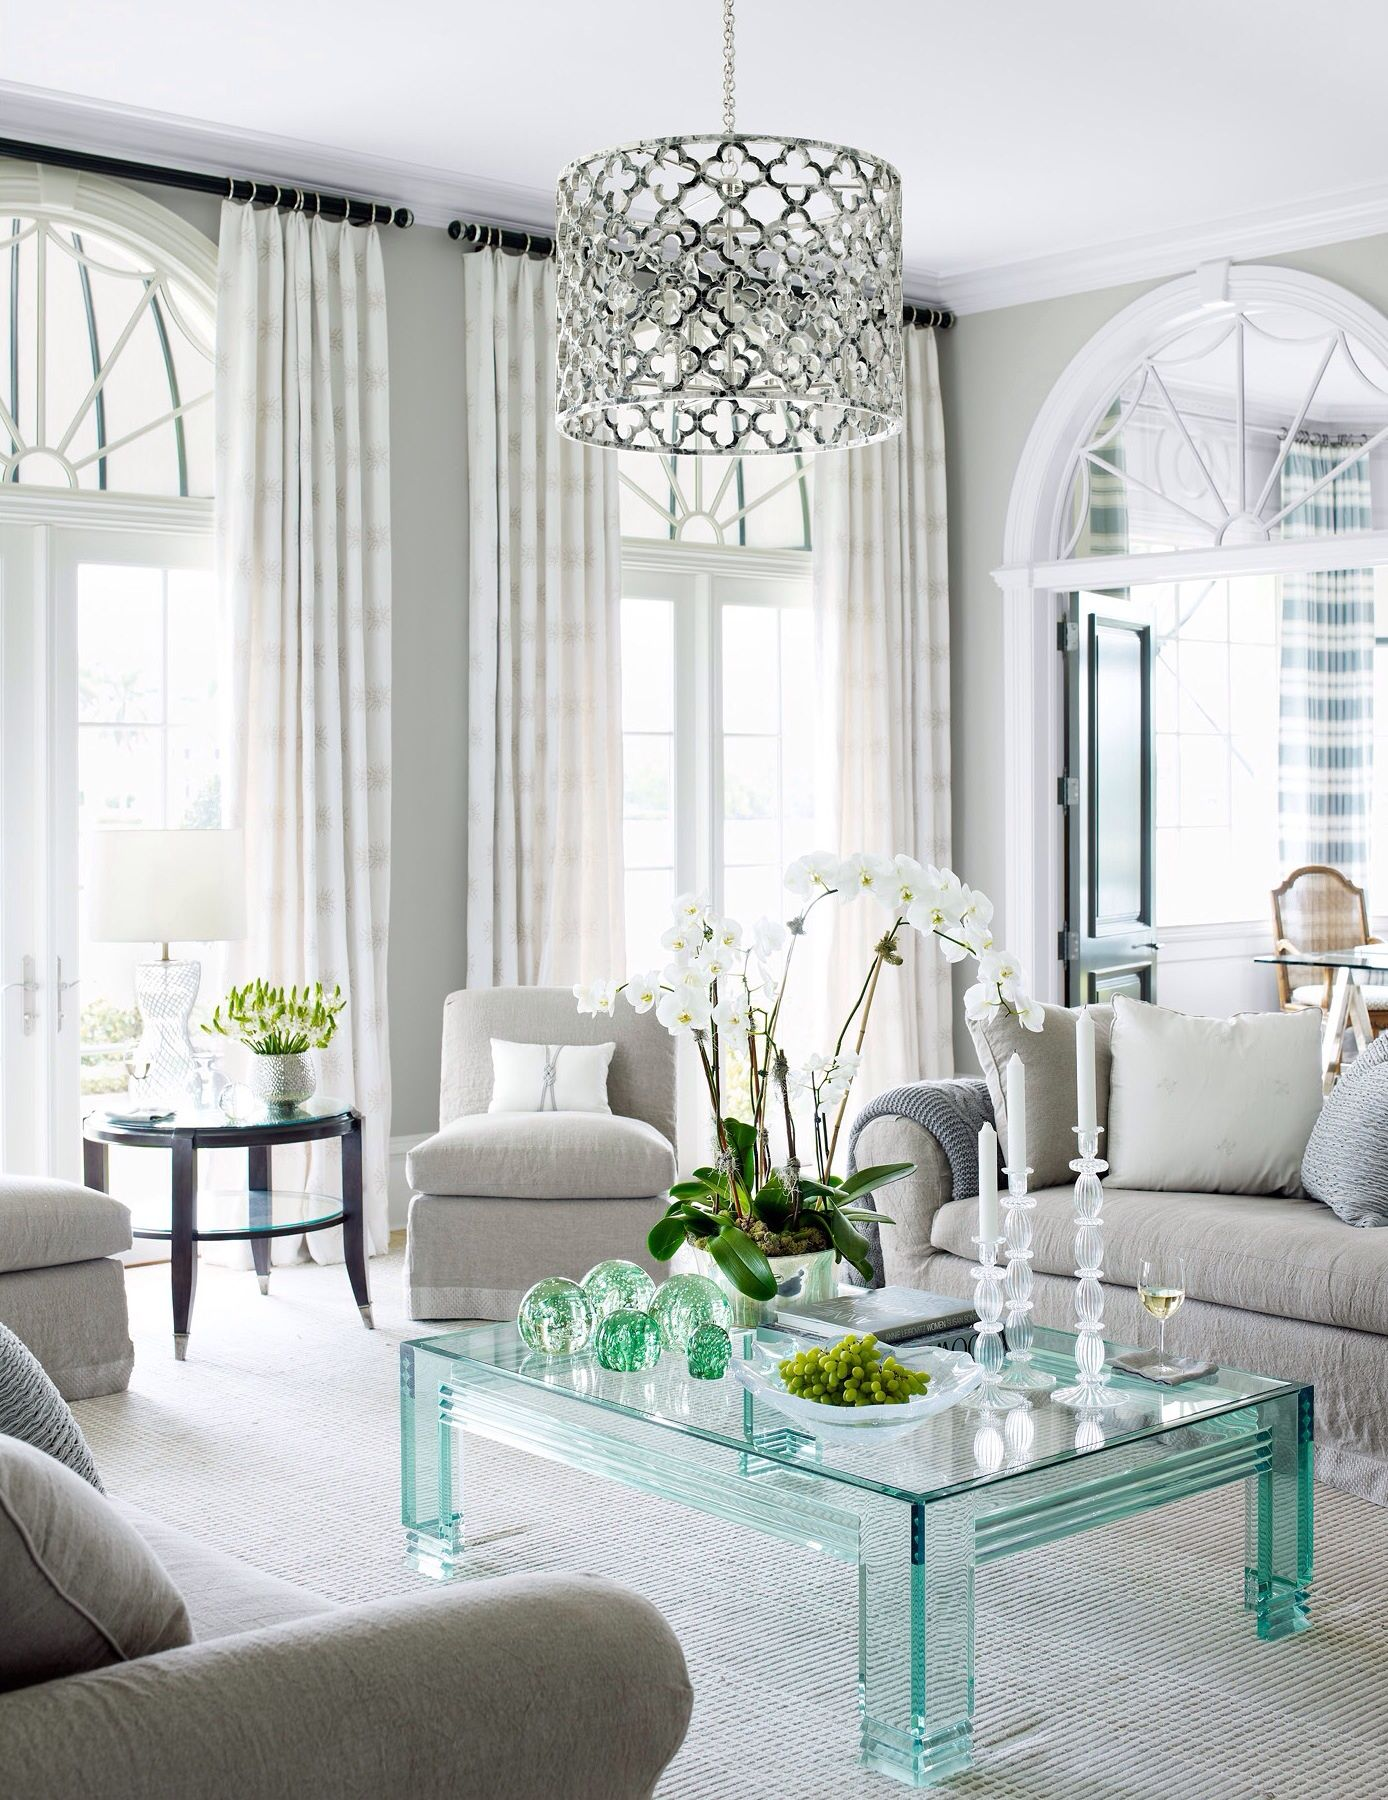 Beautiful | My place | Pinterest | Living rooms and Room